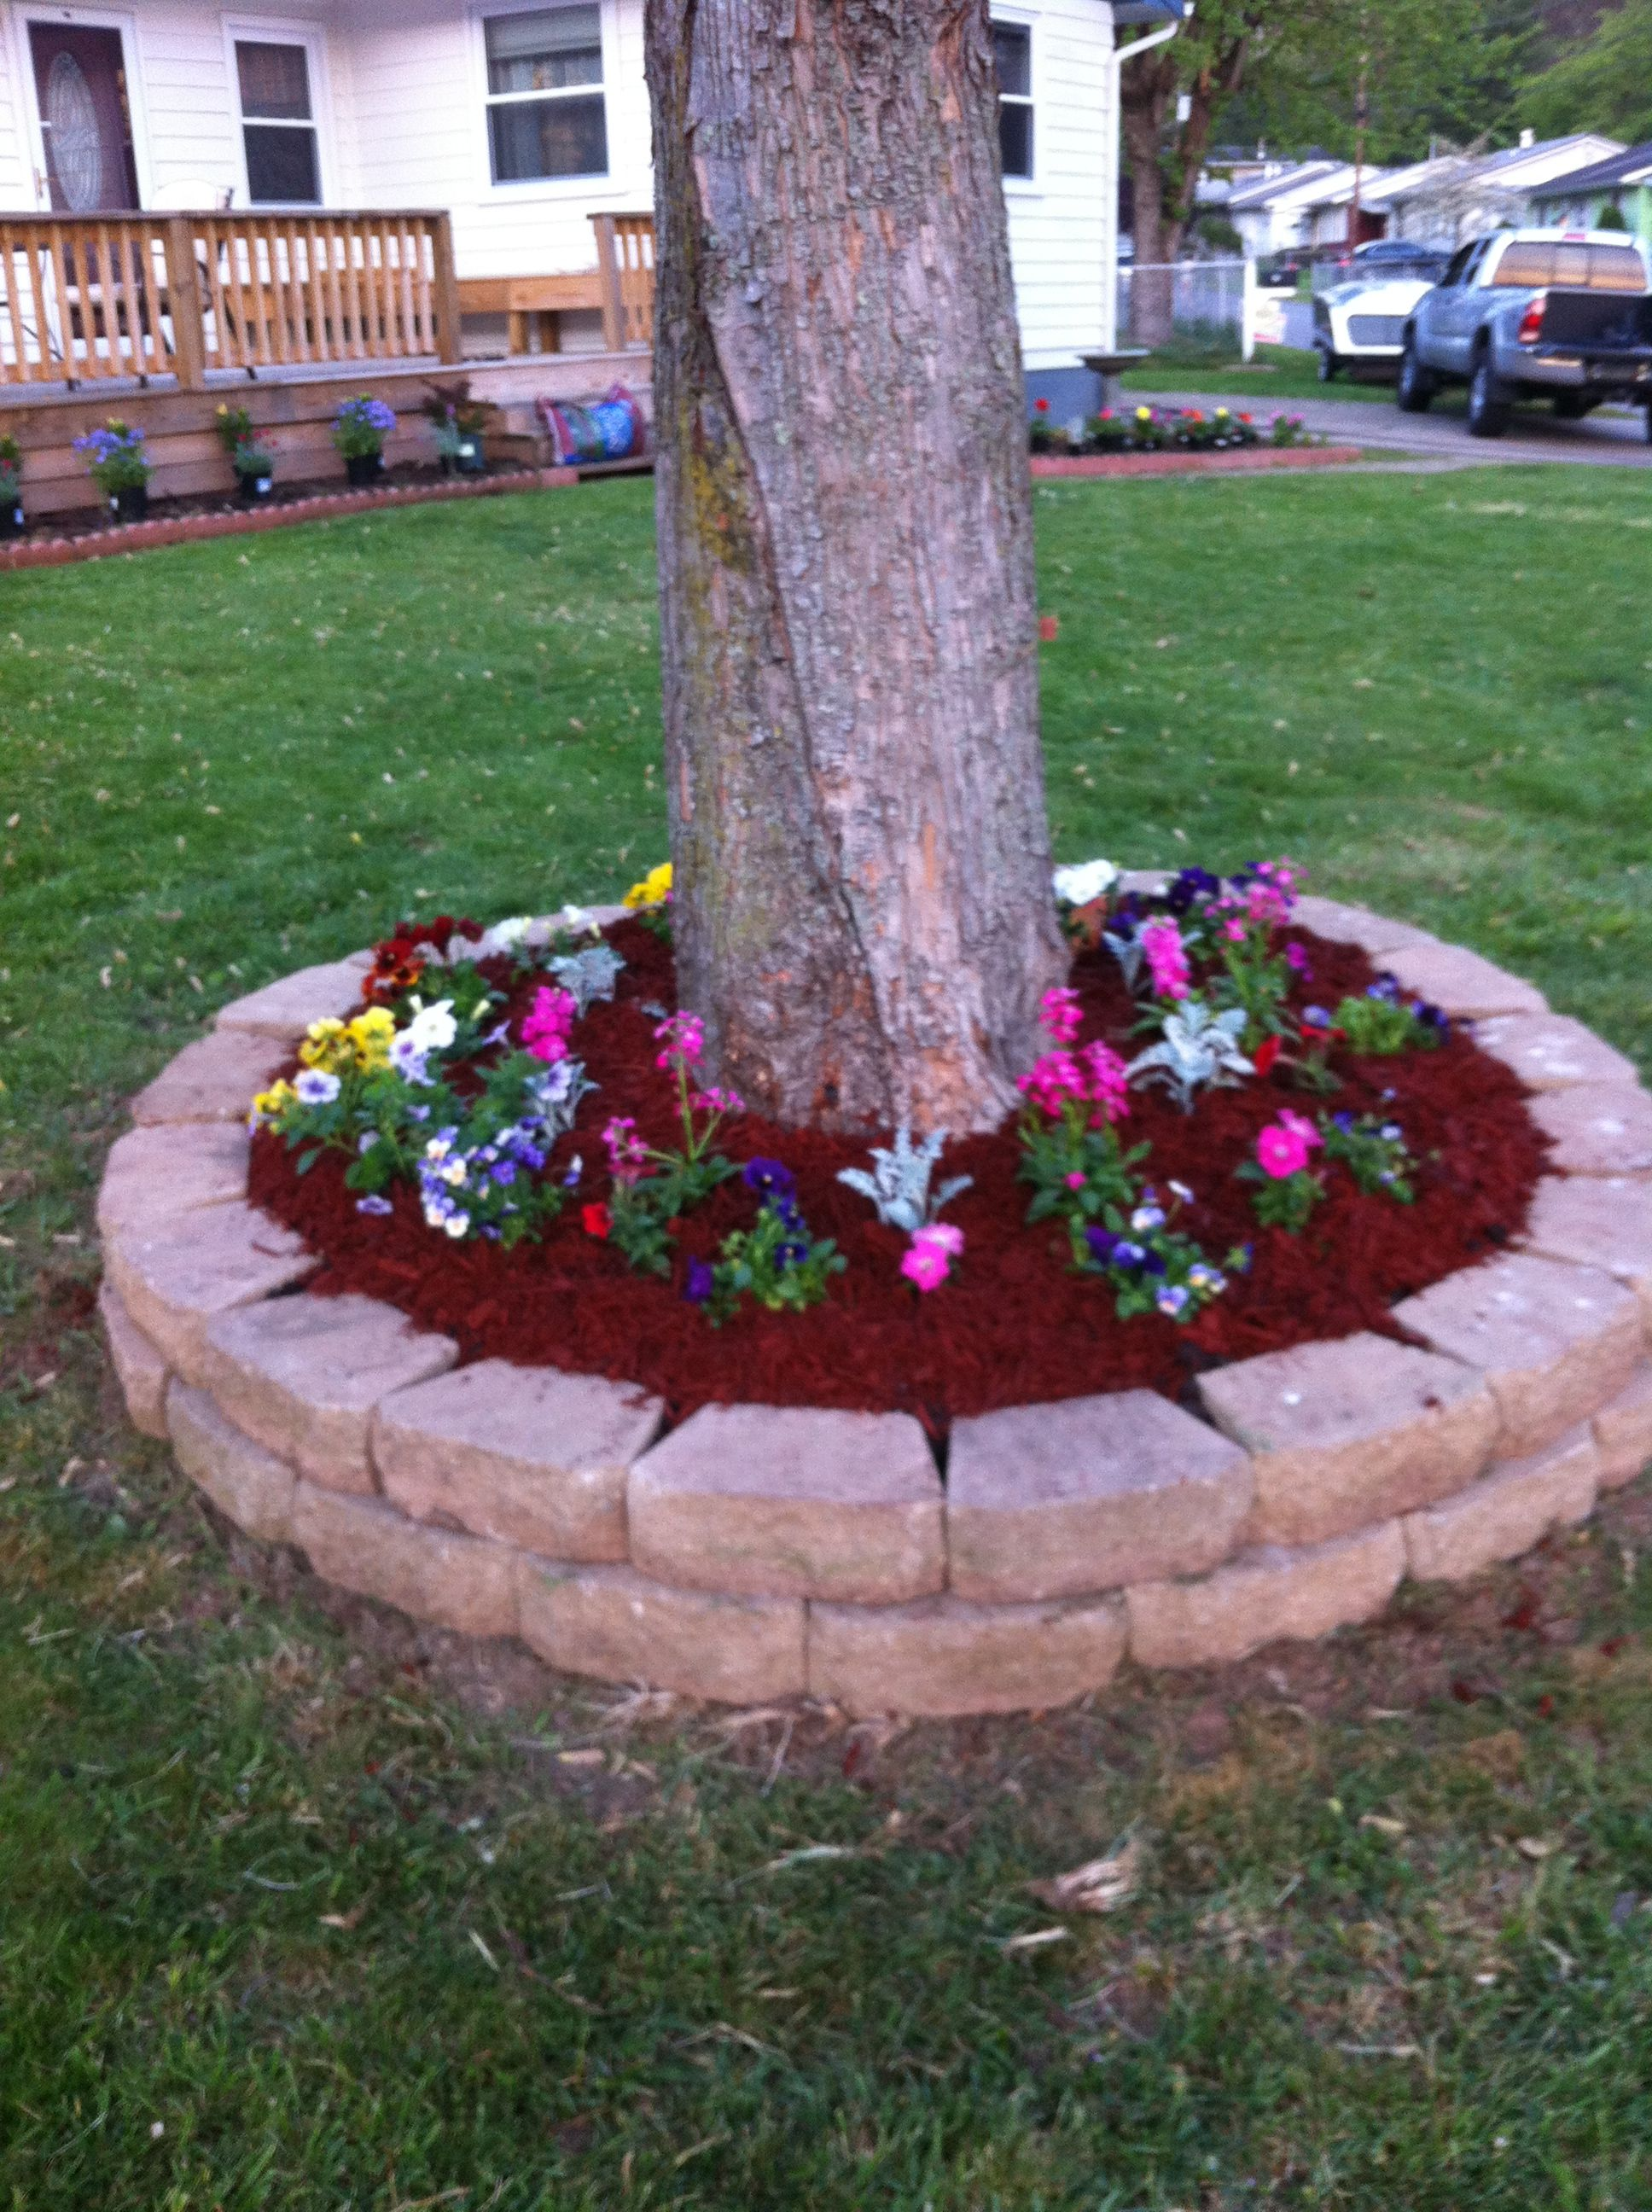 most people plant flowers in this area  but these homeowners did something brilliant